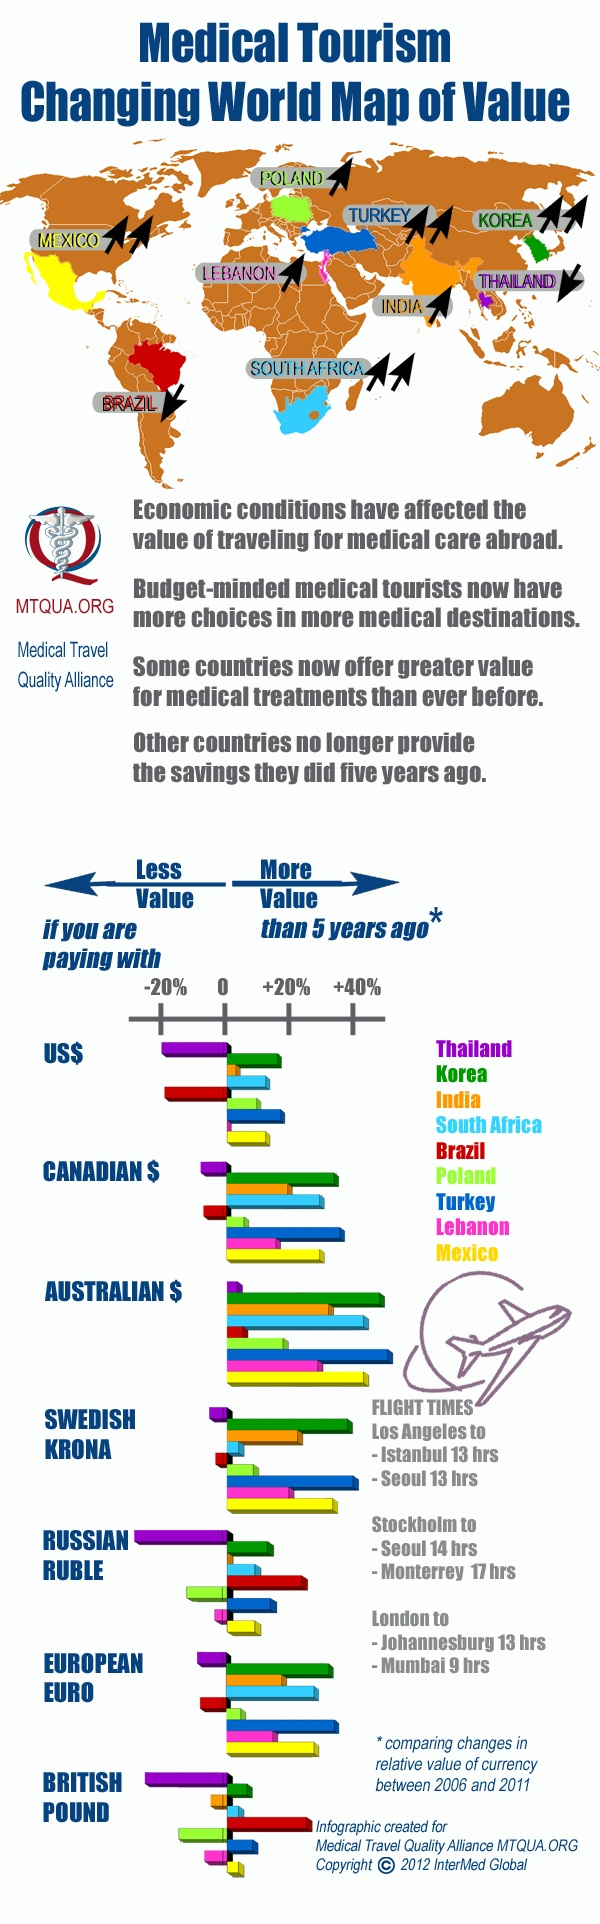 New medical tourism map of changing values of cost in cross-border health care around the world